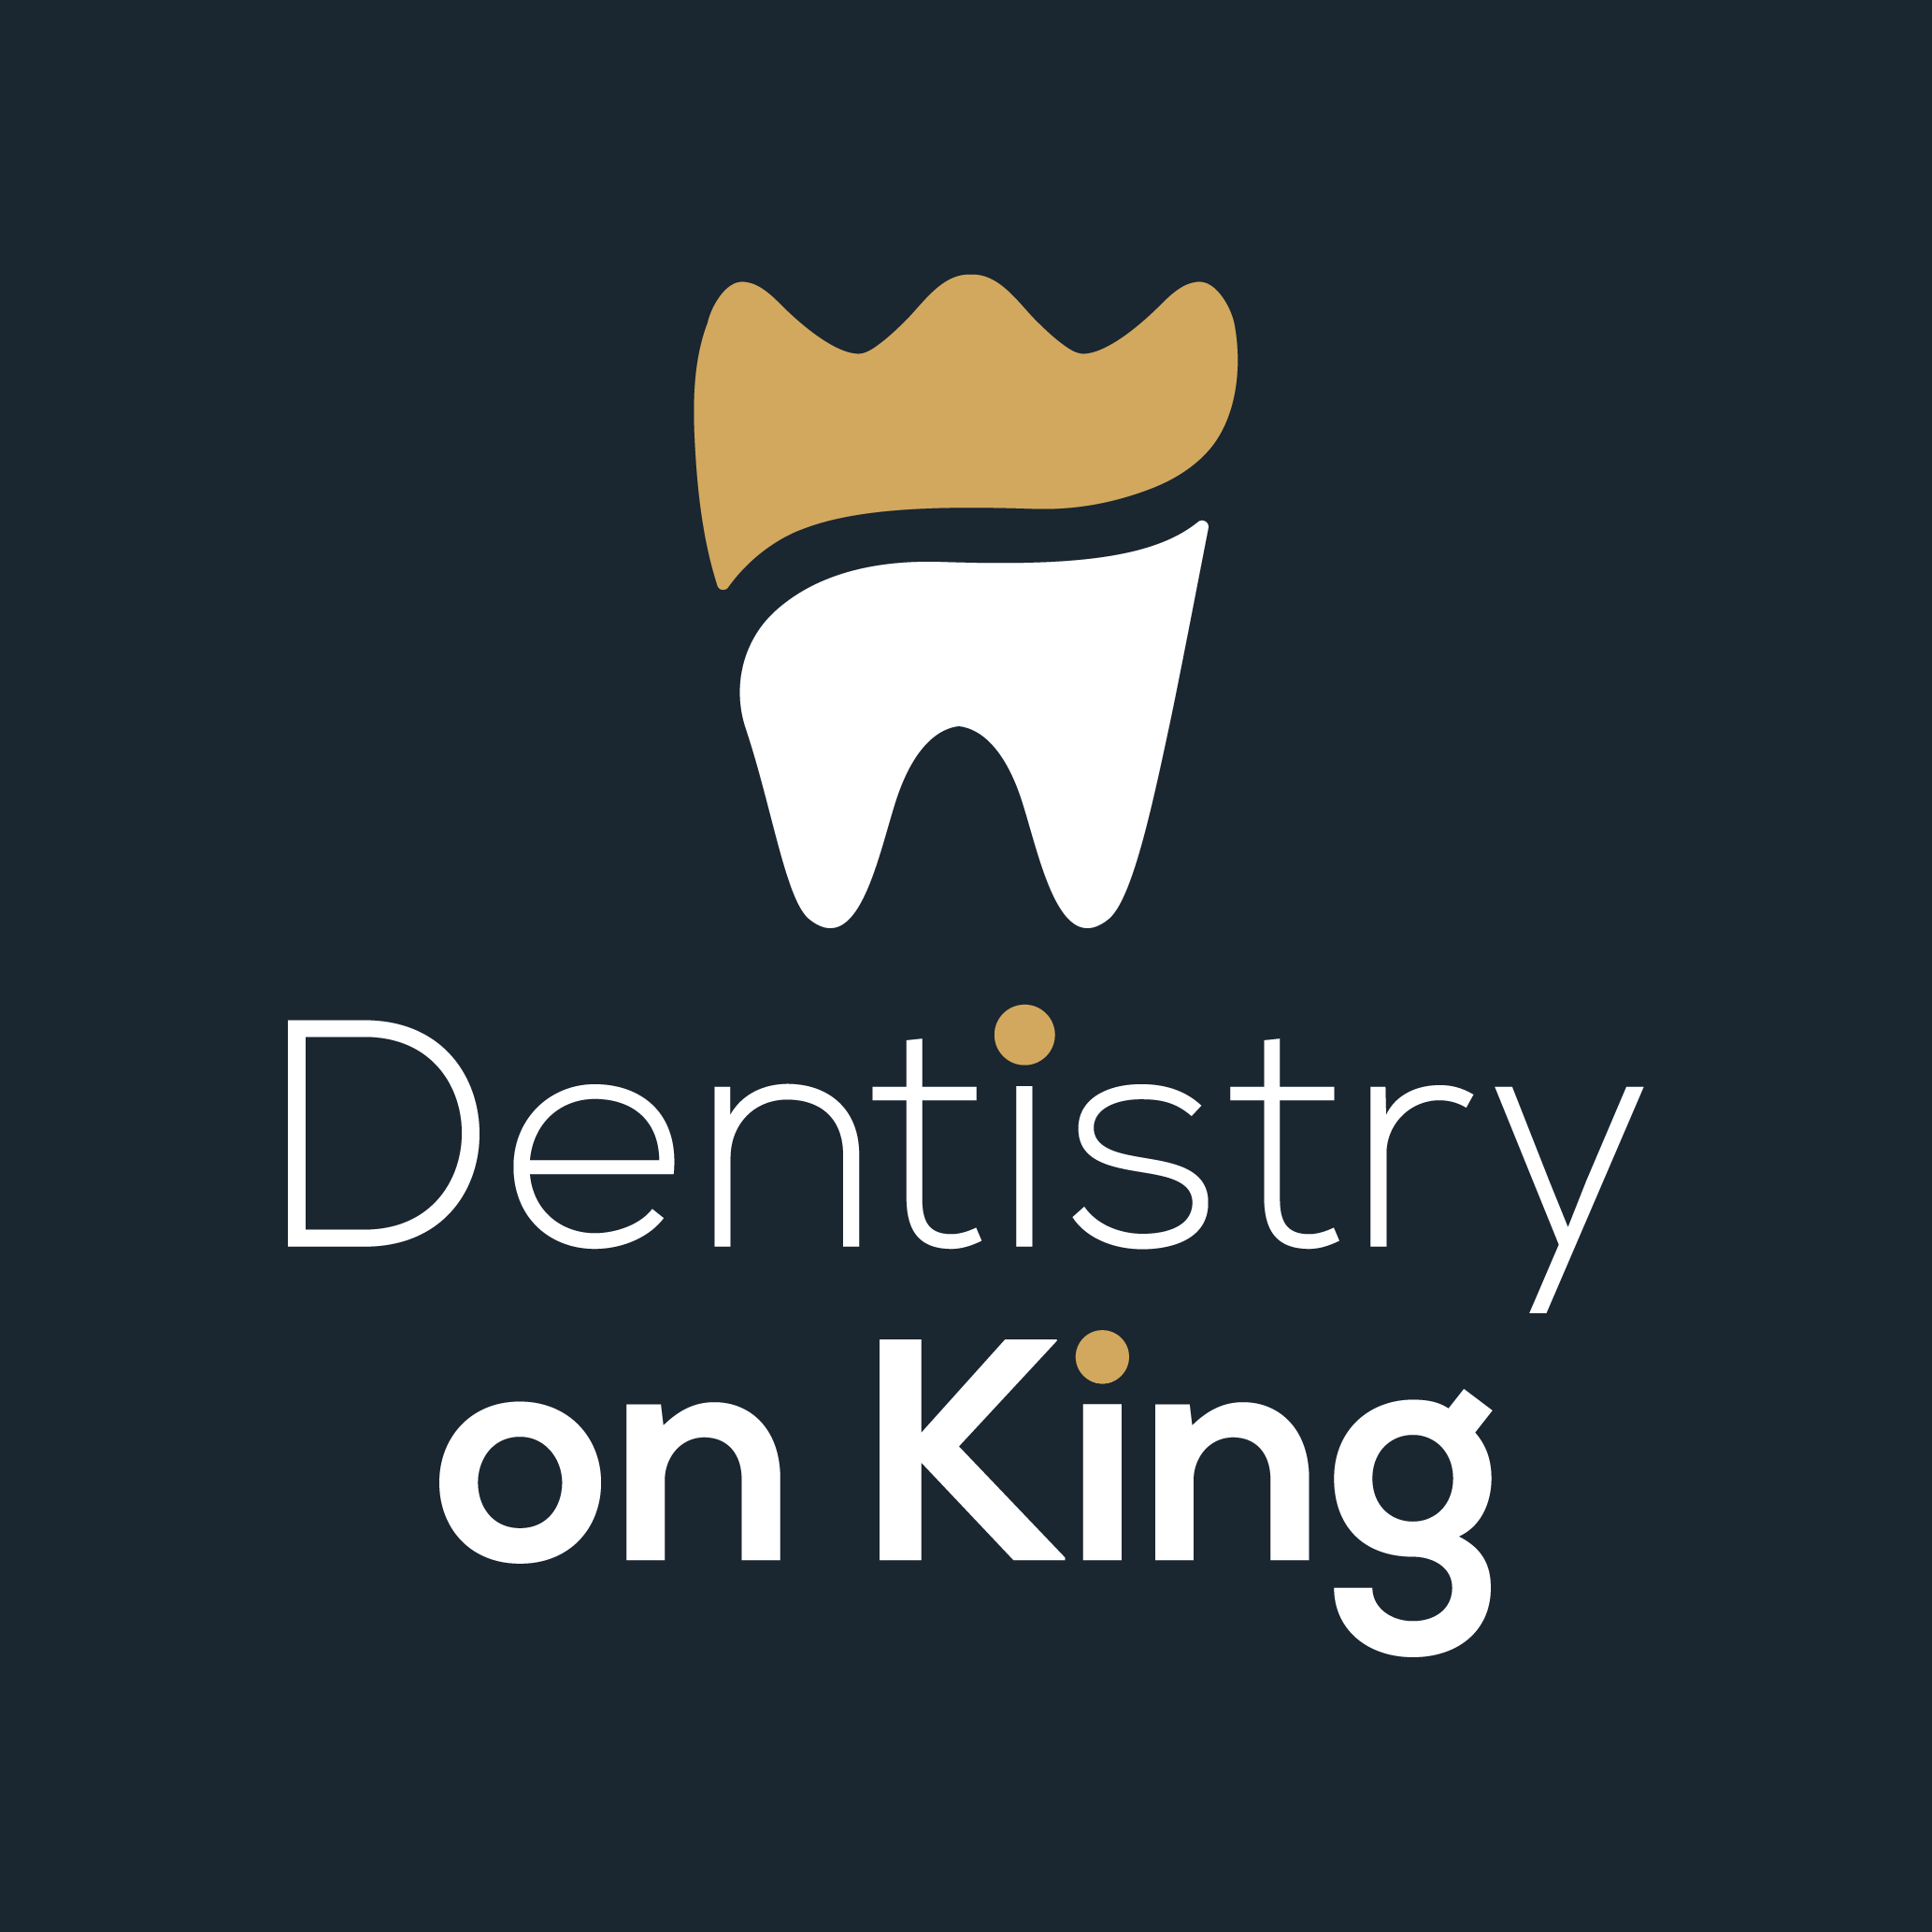 desntisty on king computer logo